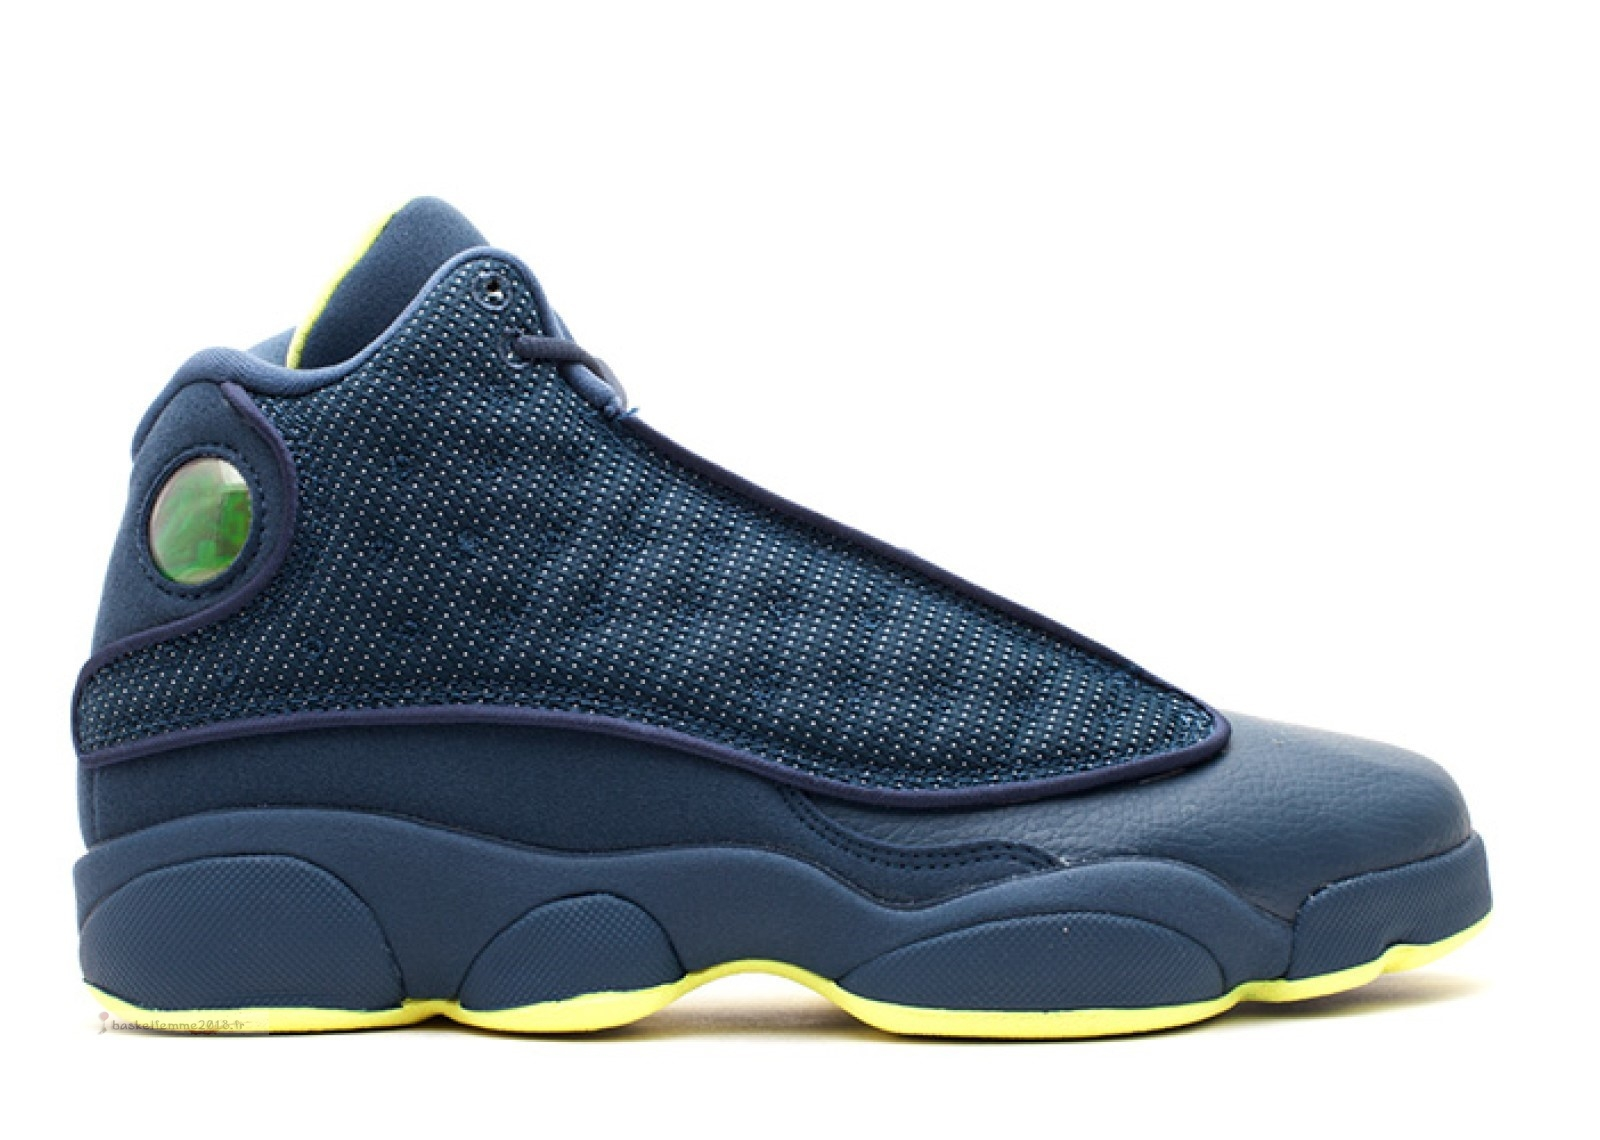 Air Jordan 13 Retro (Gs) Marine Jaune (414574-405) Chaussure de Basket